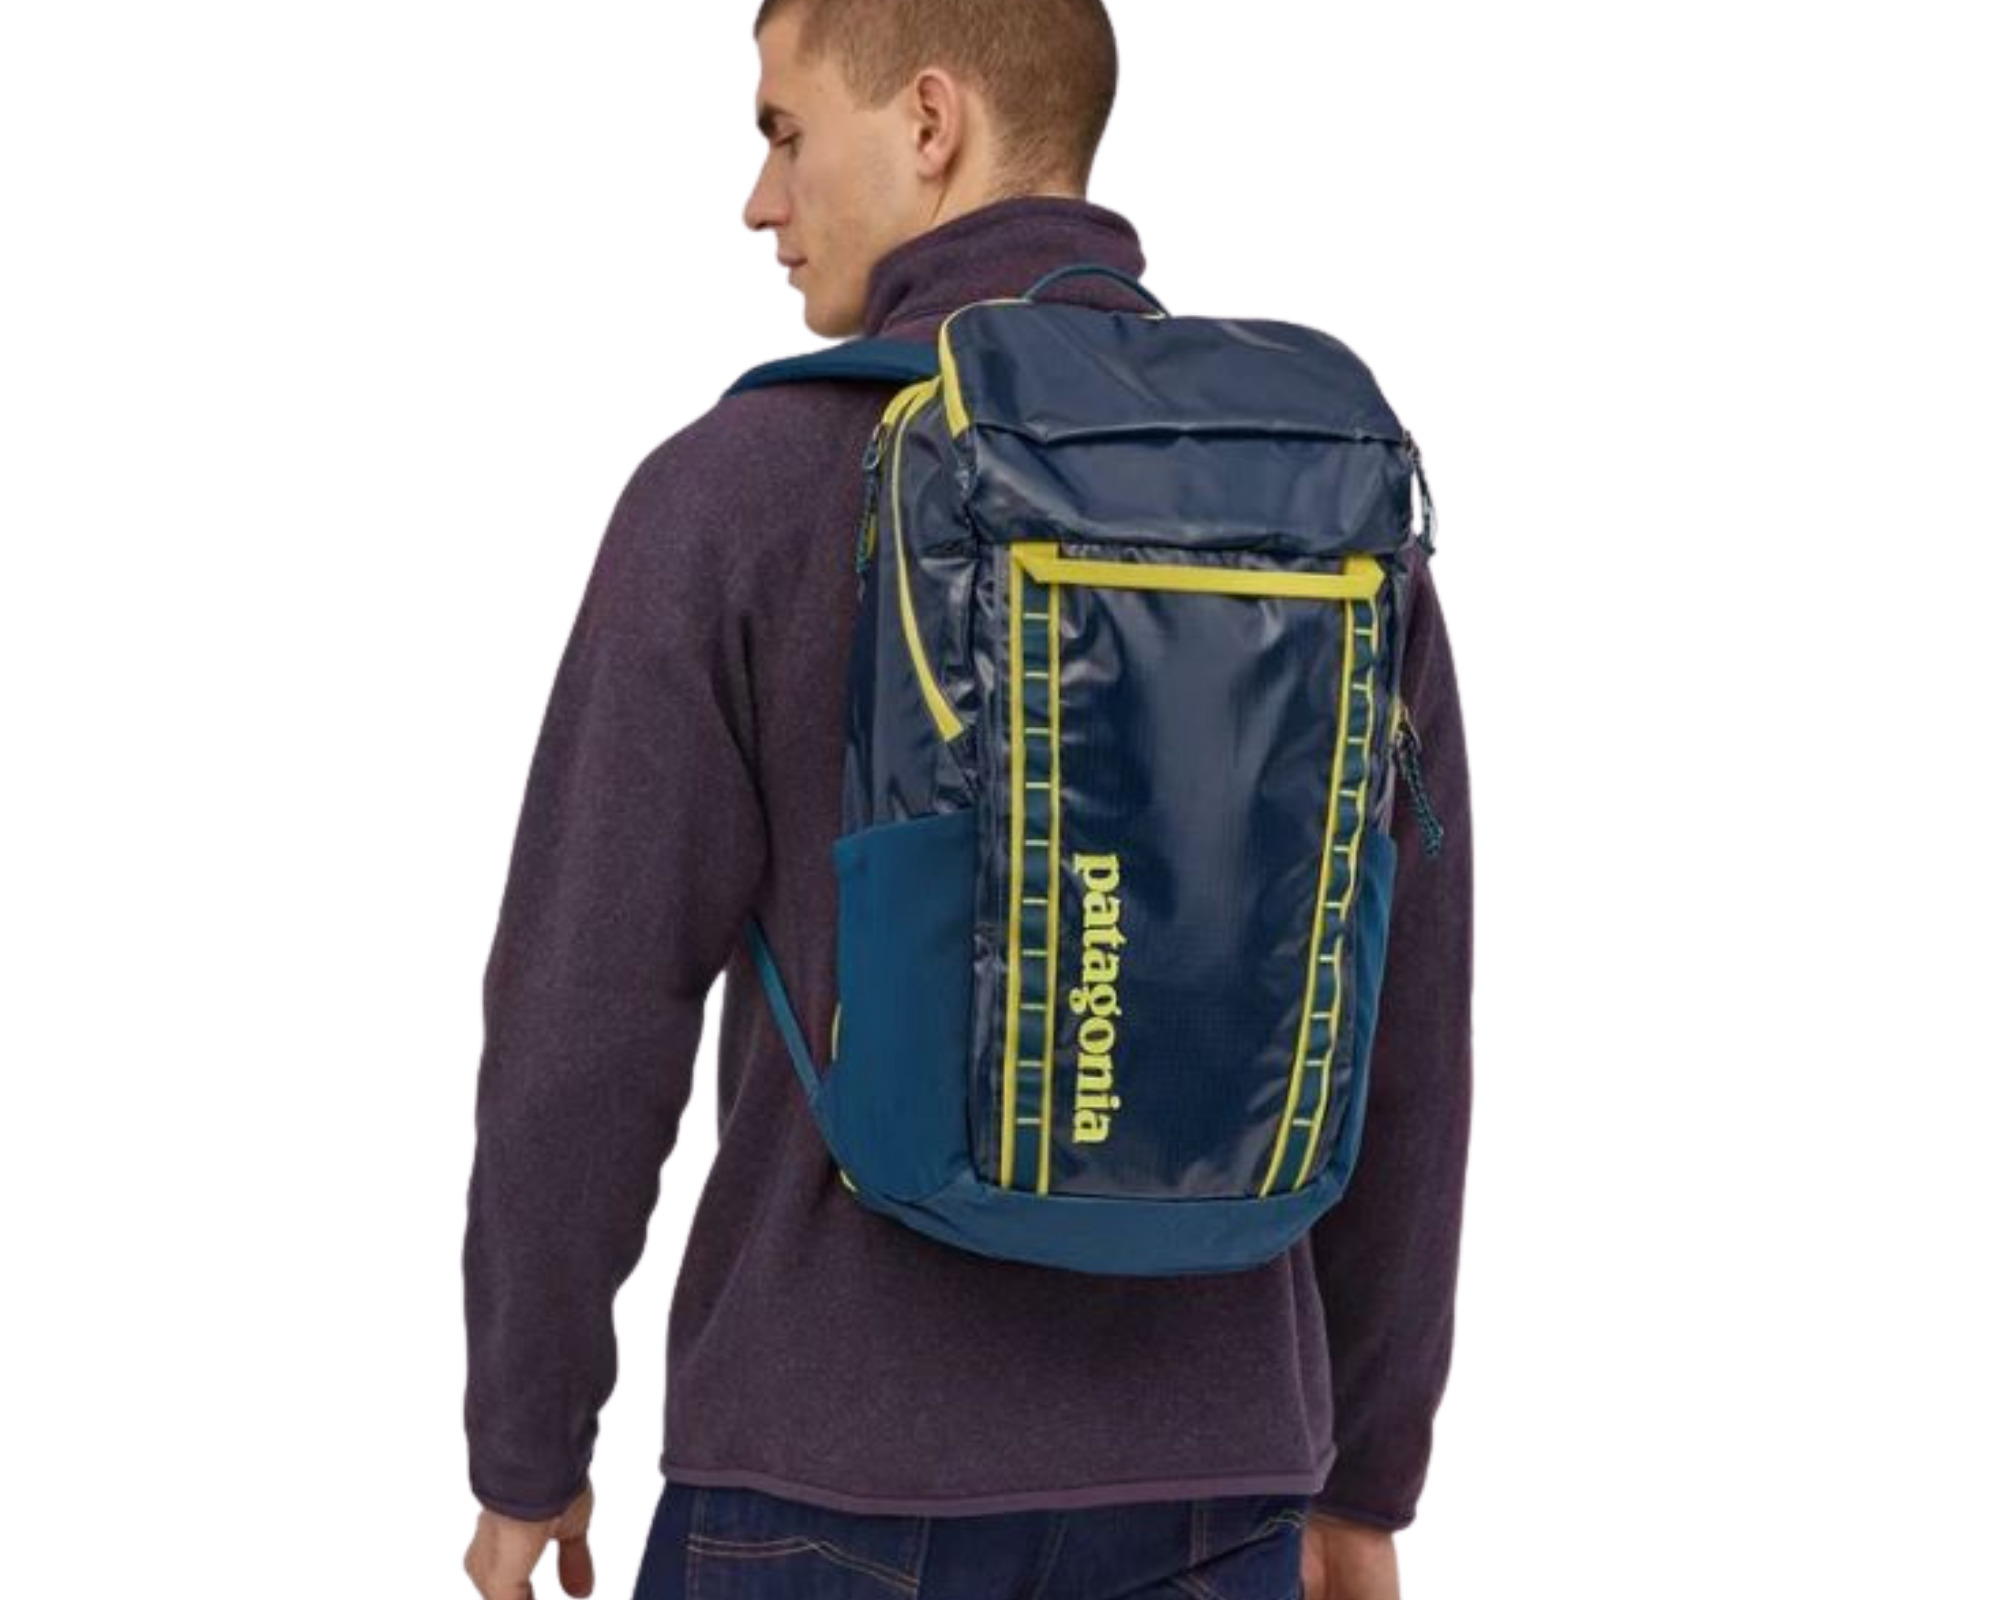 Patagonia Black Hole backpack review: the 32L bag being worn by a male model